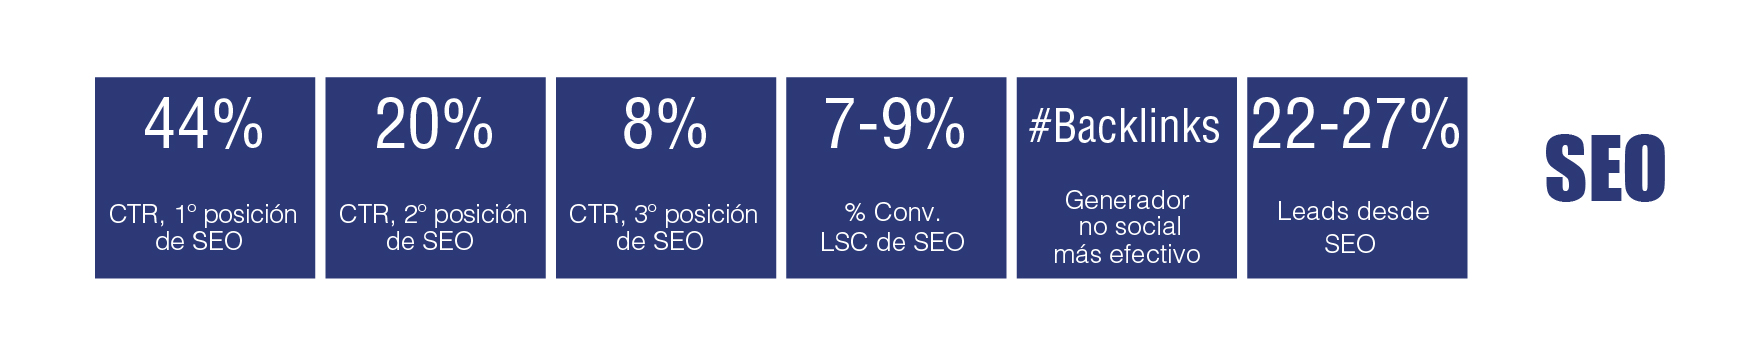 tabla periódica de marketing digital B2B: SEO